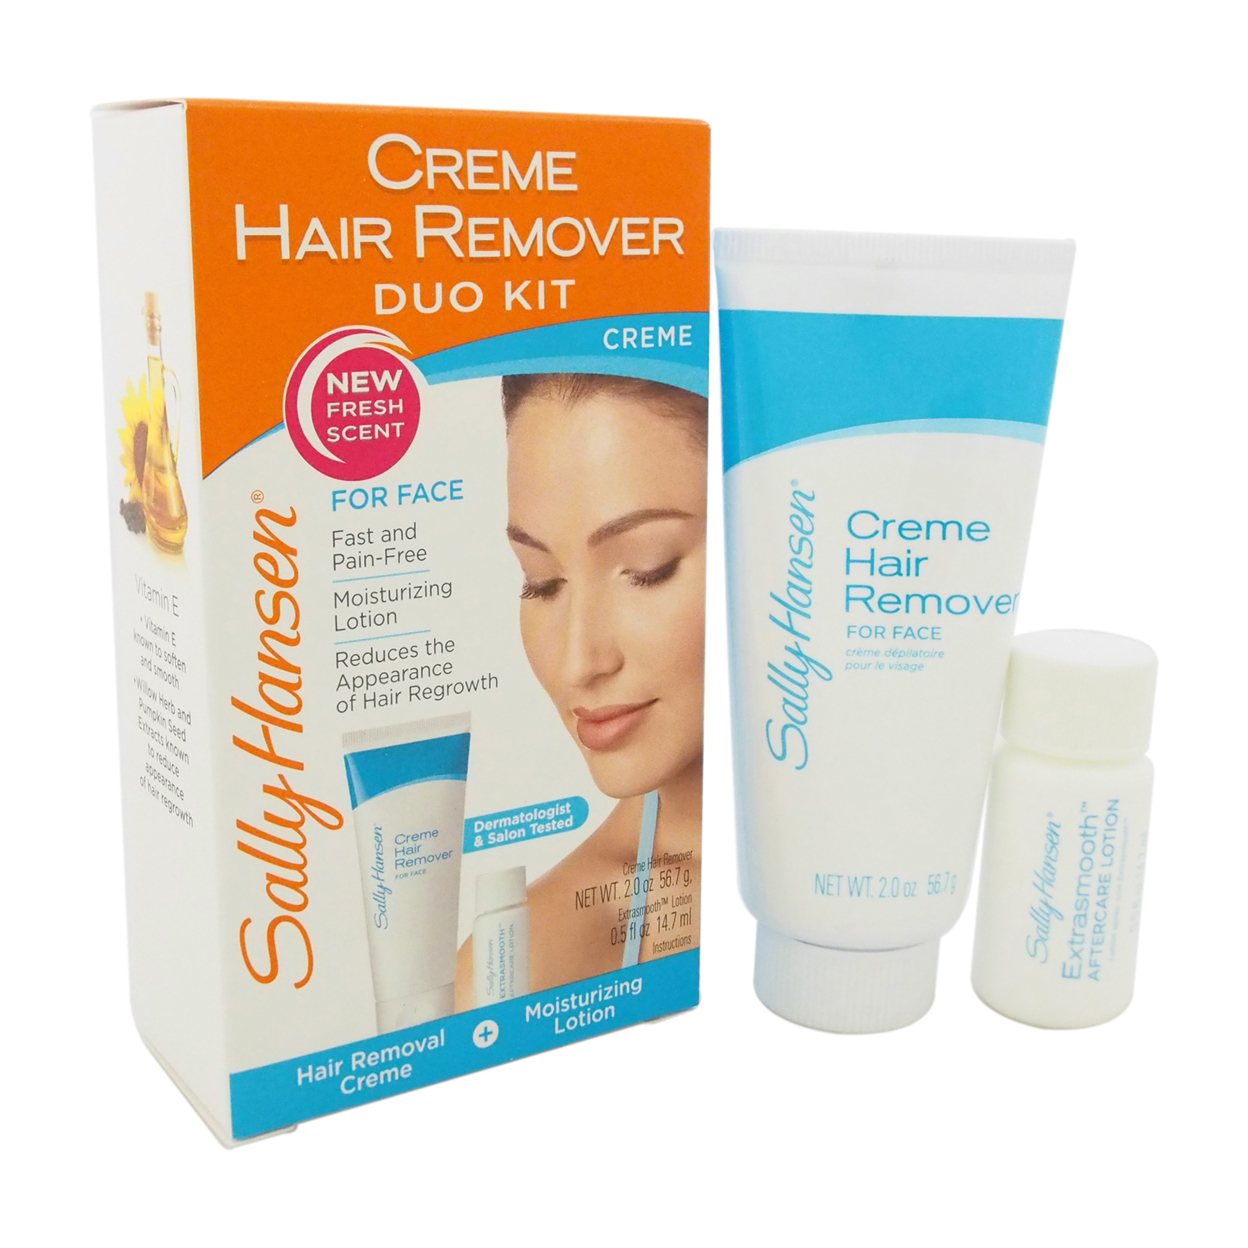 Creme Hair Remover Kit for Face by Sally Hansen for Women - 1 Pack Hair remover 5898e1d0c98fc45091093dd7